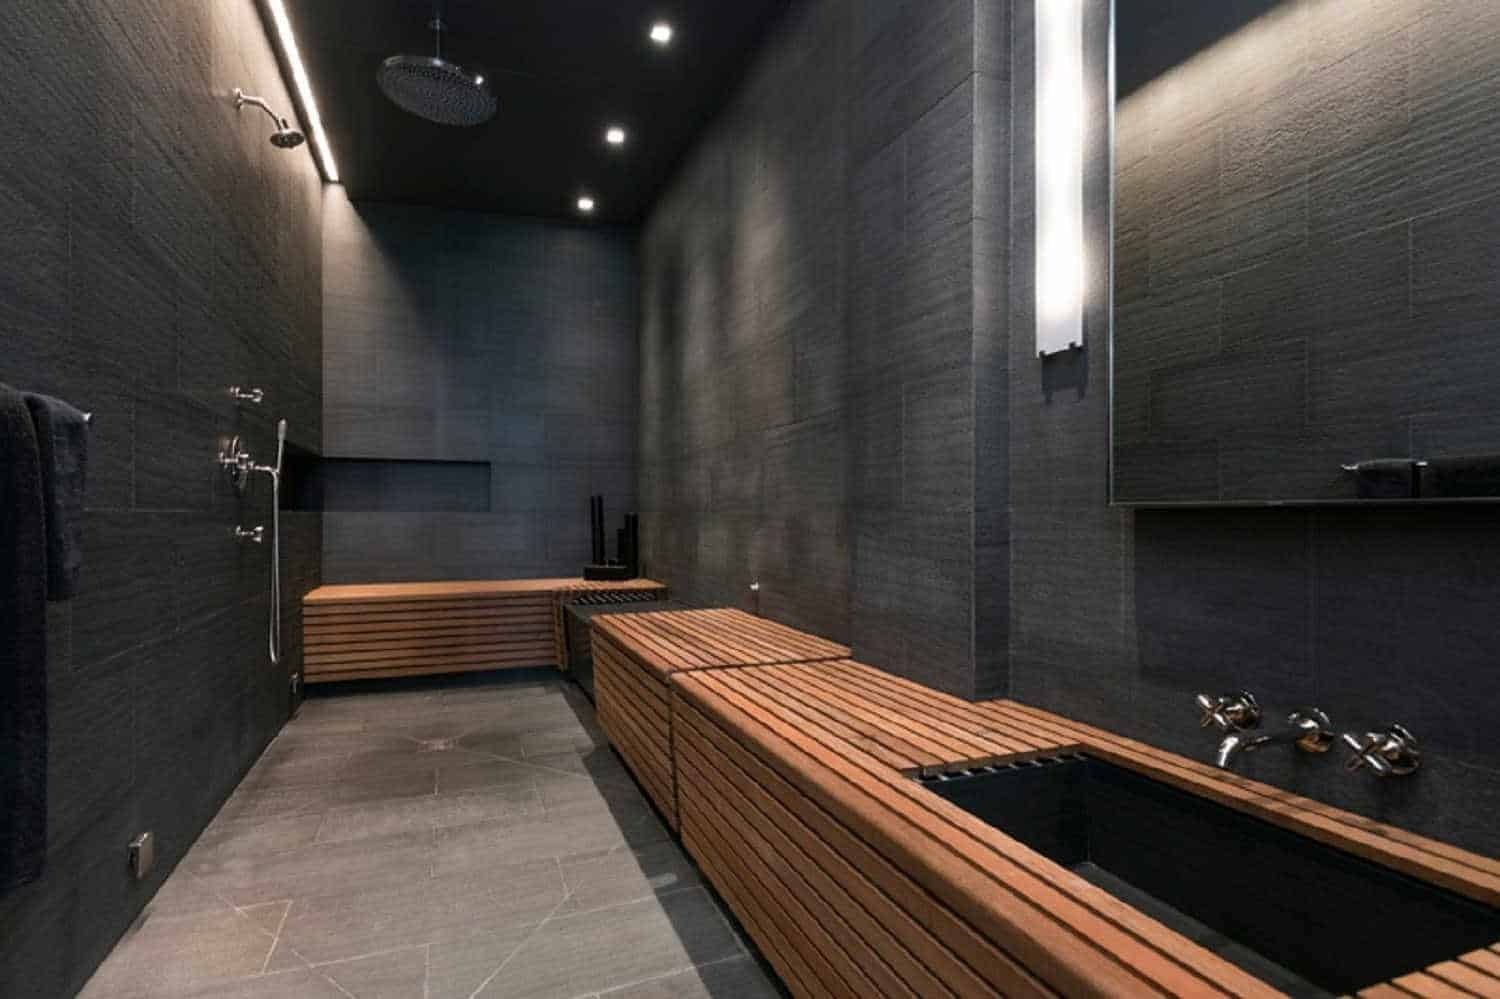 This elongated and black-tiled bathroom is dominated by a wooden L-shaped structure that serves as vanity and bench in a sauna-style design.